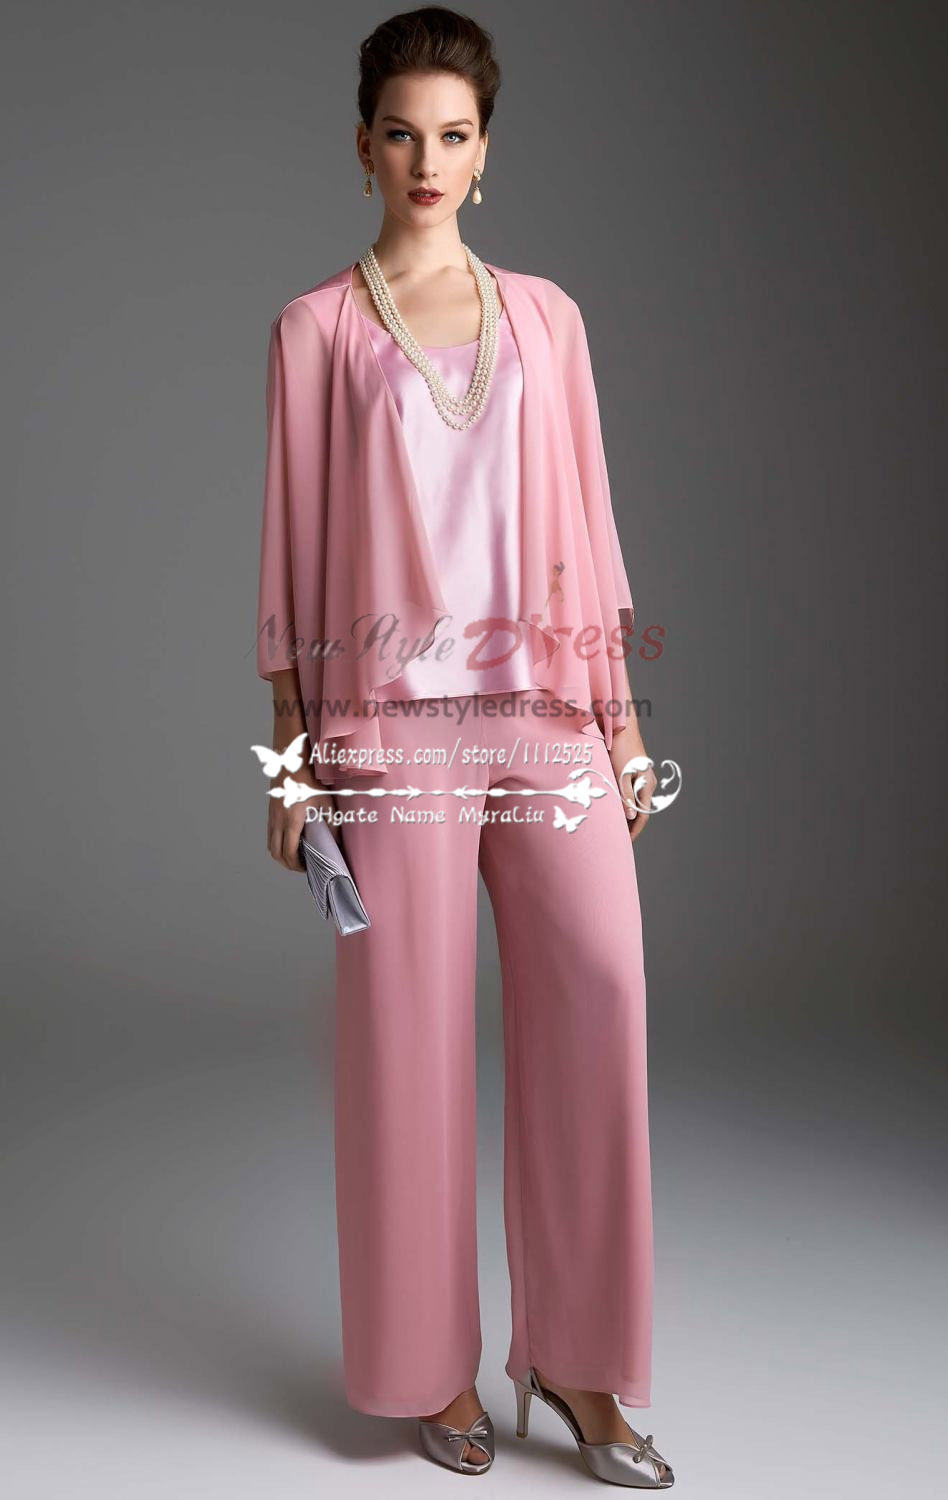 Pink Chiffon Women S Outfits Lovely With Jacket Trouser Suit For Wedding